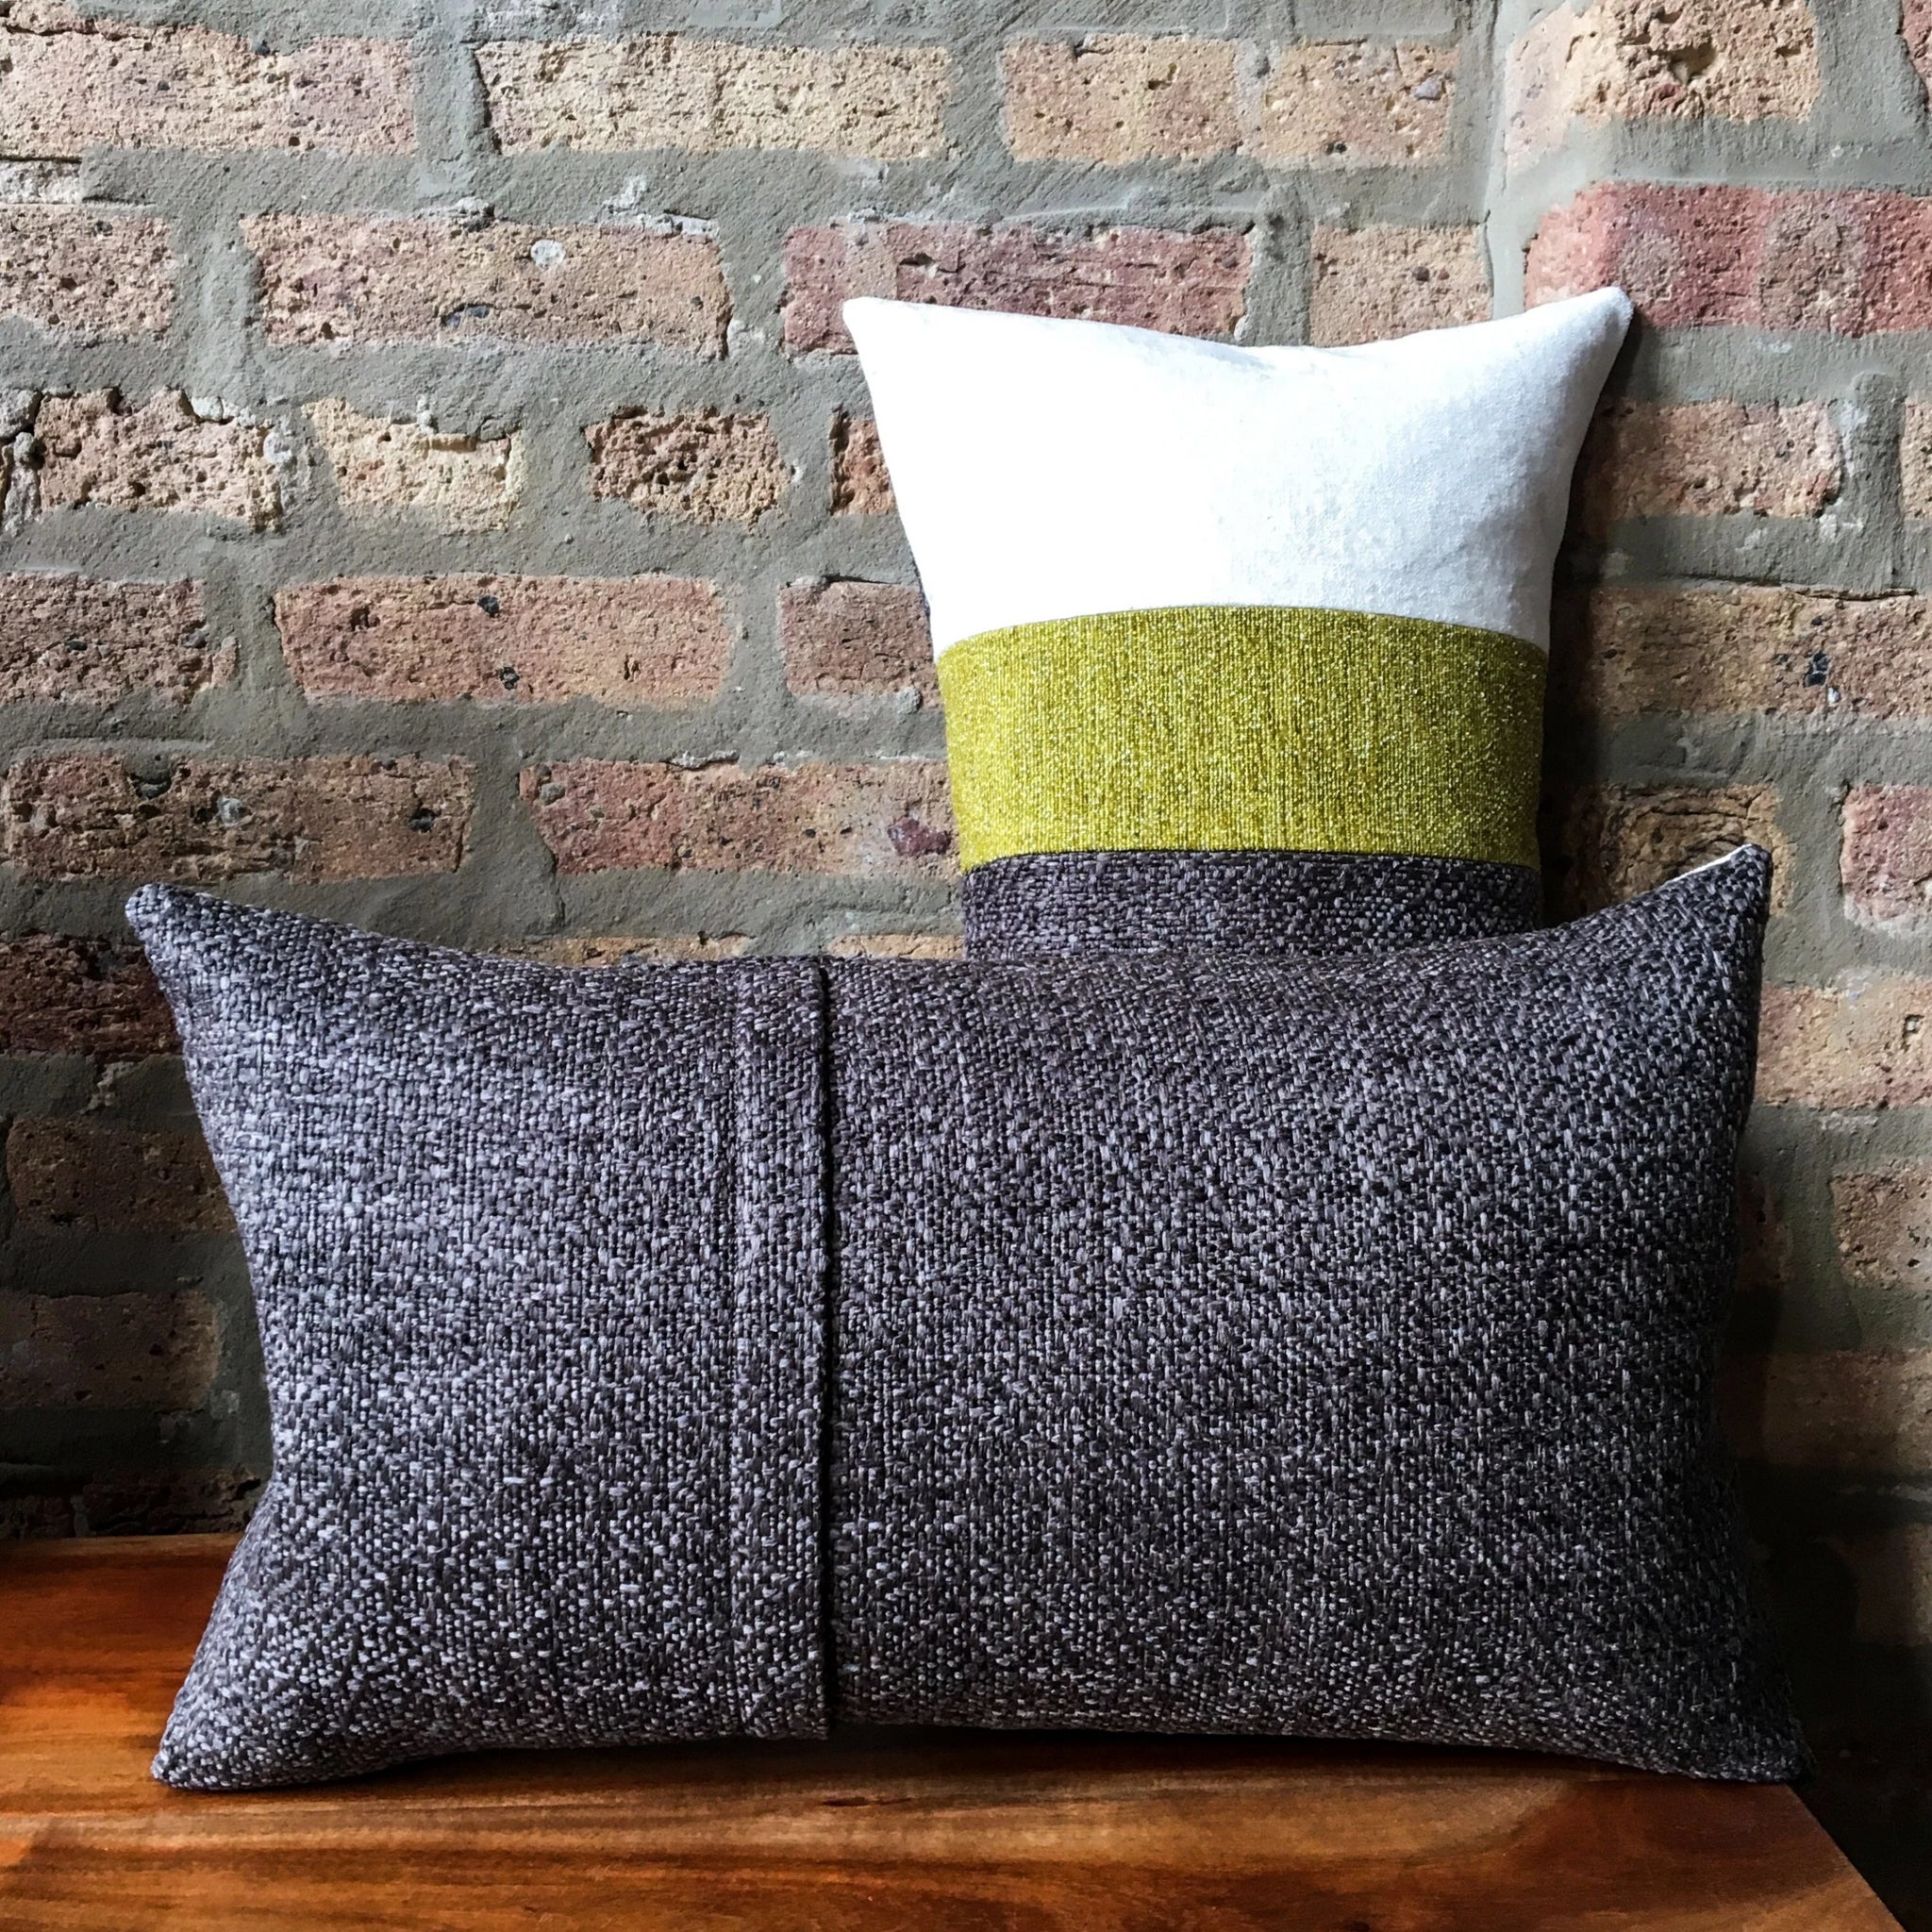 Retro Color Blocked Lumbar Pillow Covers | Gray, Chartreuse, Off-White | Mid Century Modern Decor | Handmade